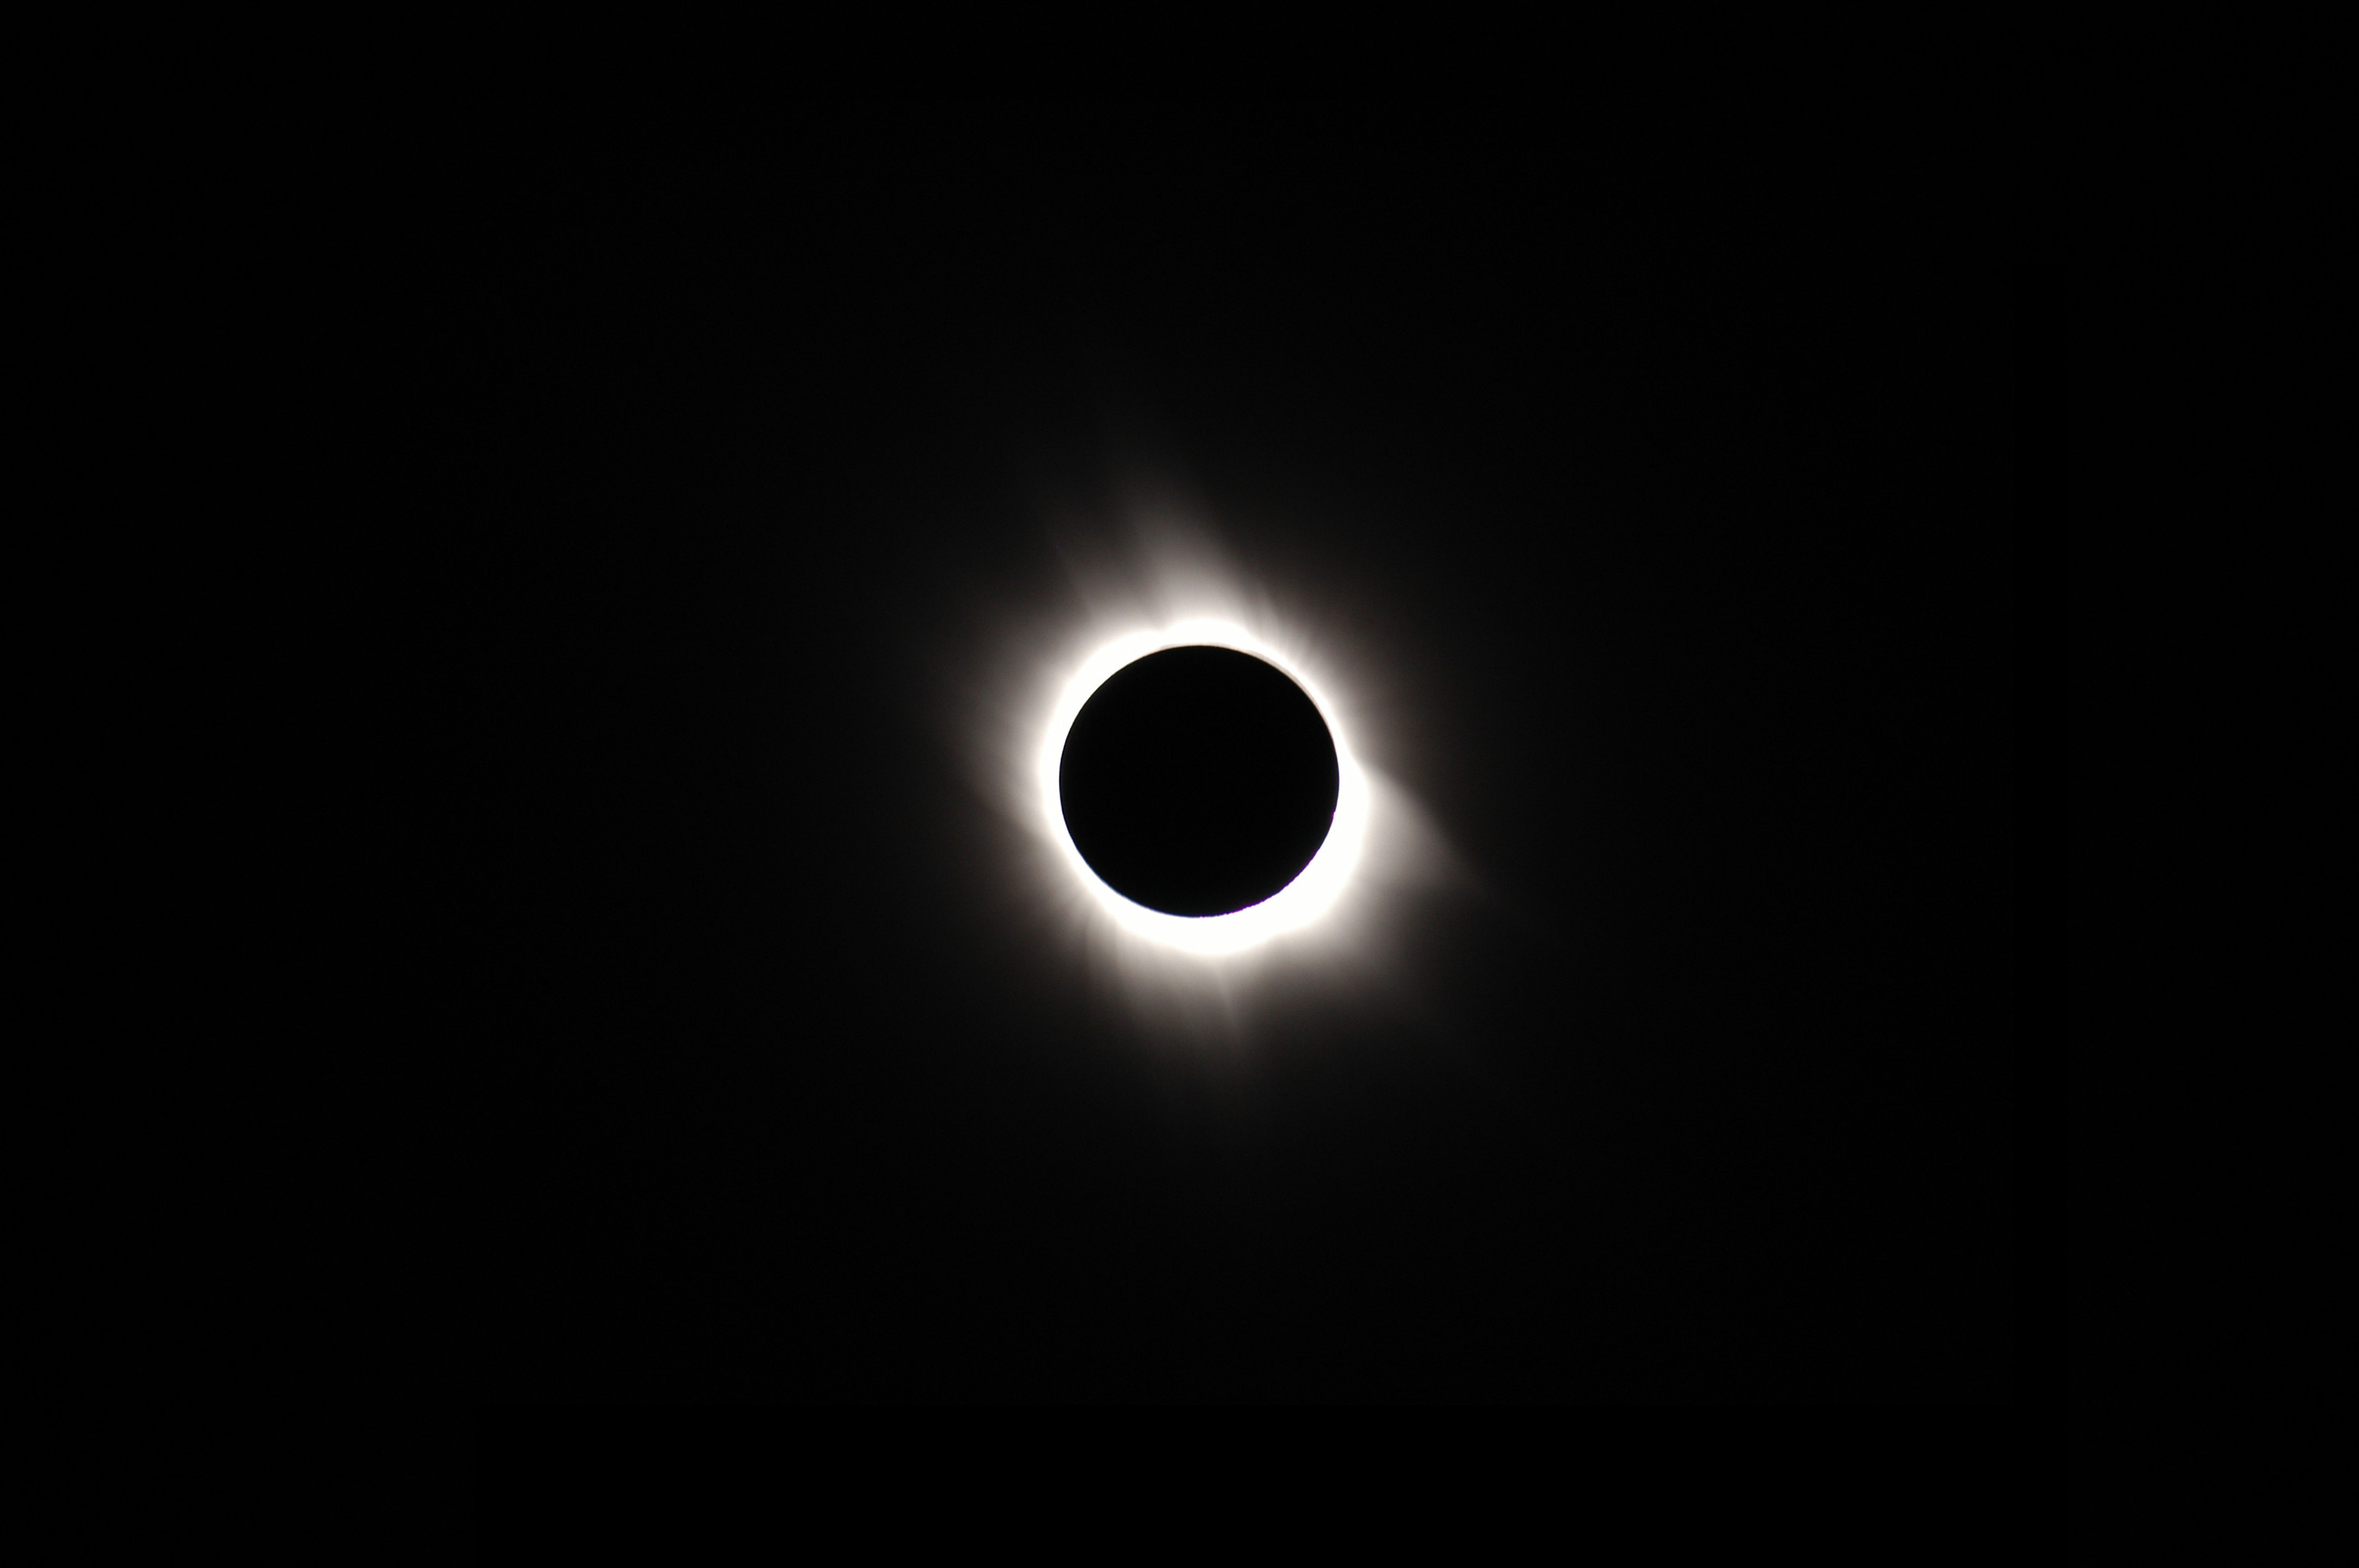 3008x2000 Make the total eclipse last forever with these 25 HD wallpapers - deTeched